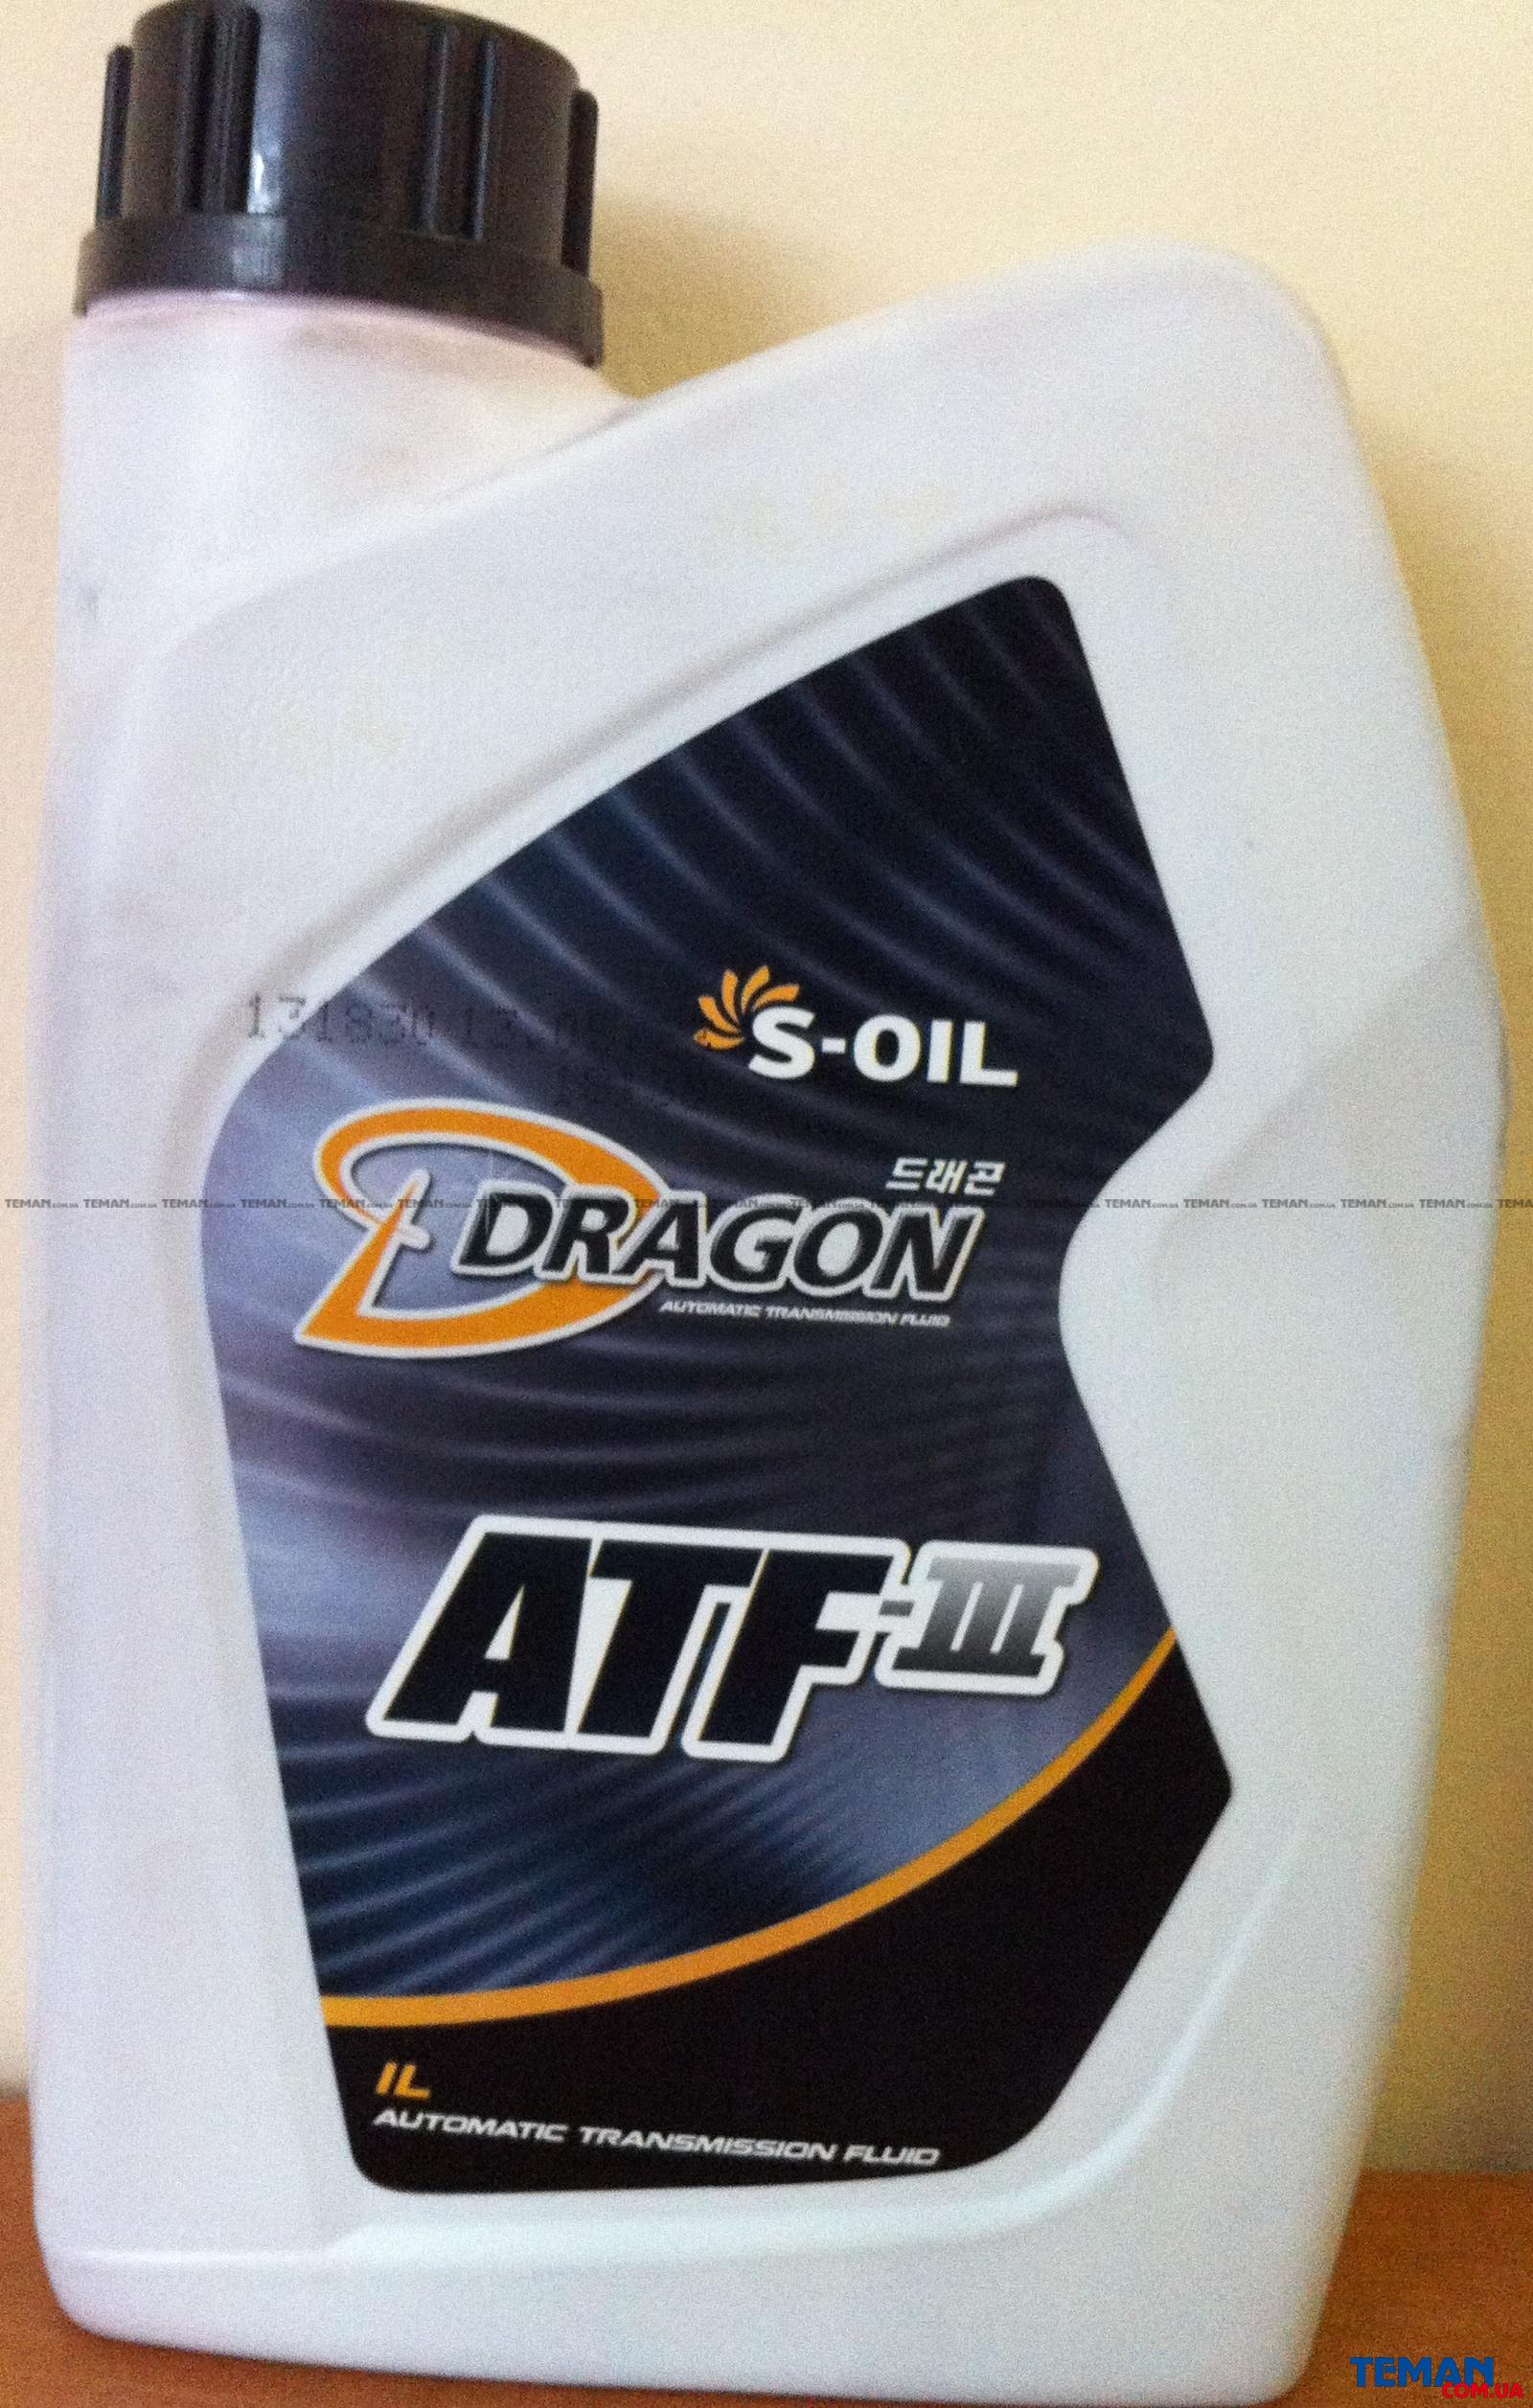 S-OIL - DRAGON ATFIII 1